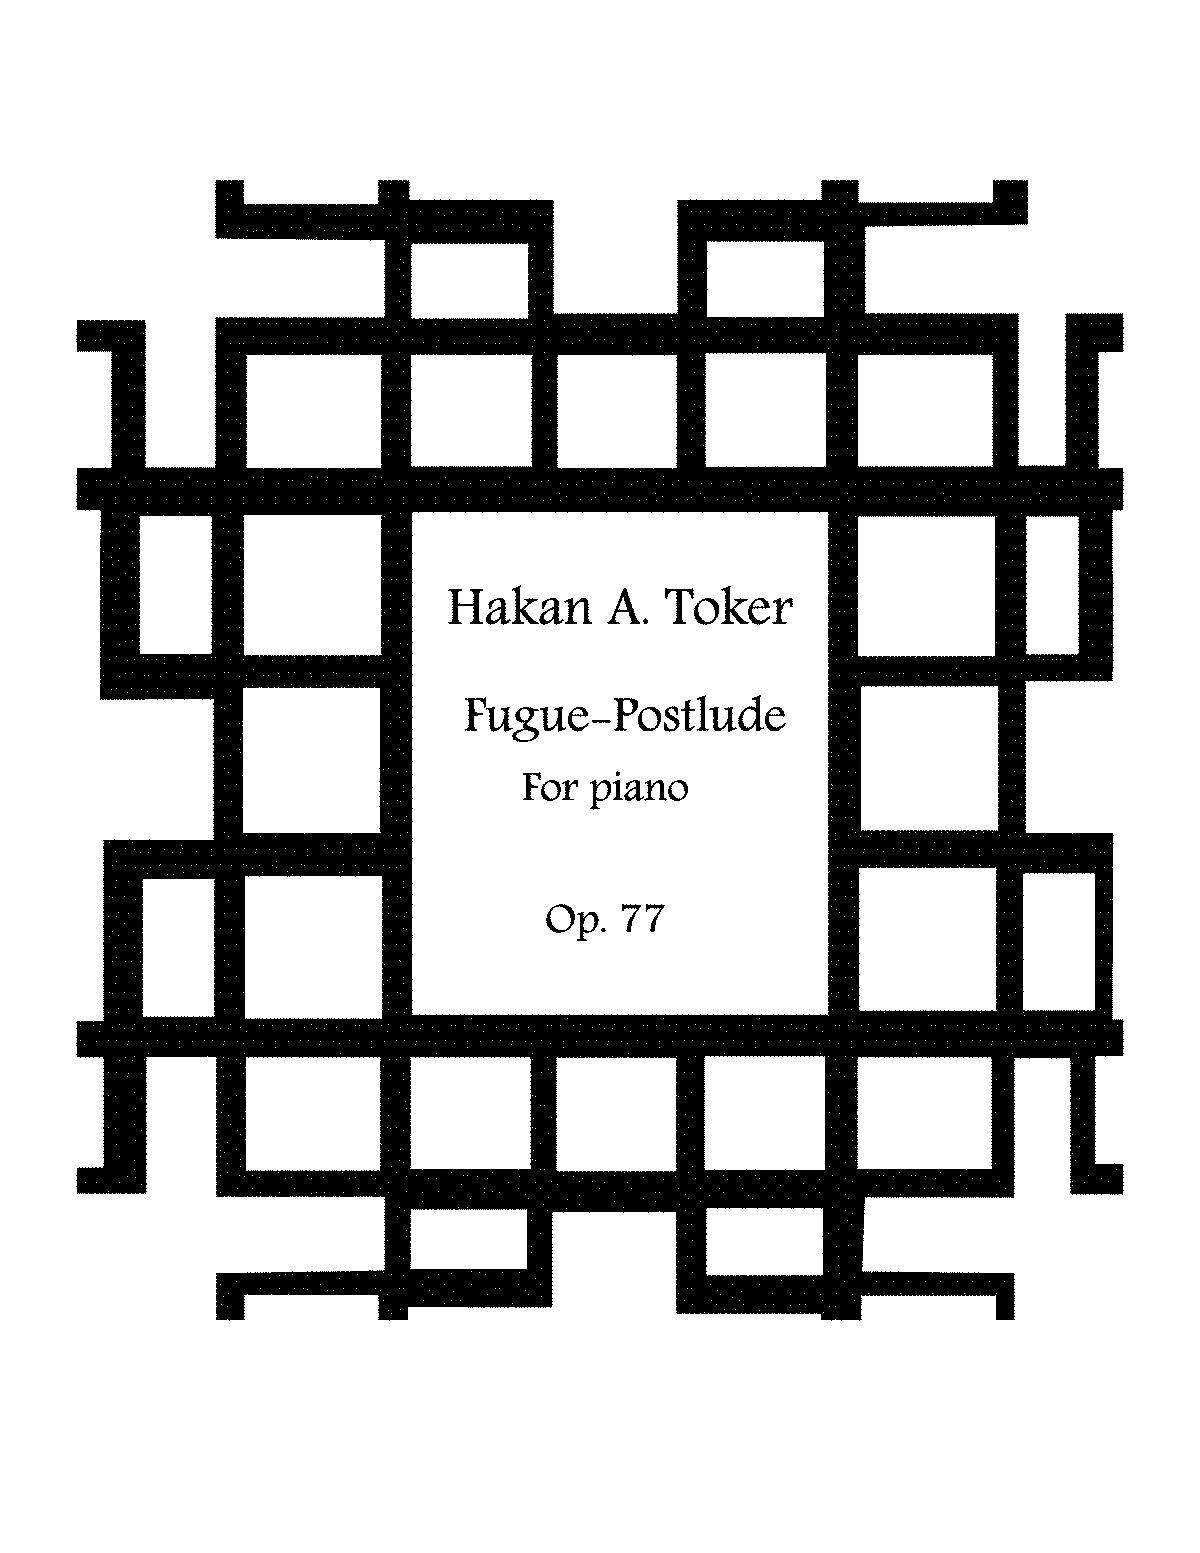 PMLP585111-Fugue-Postlude by Hakan A. Toker.pdf